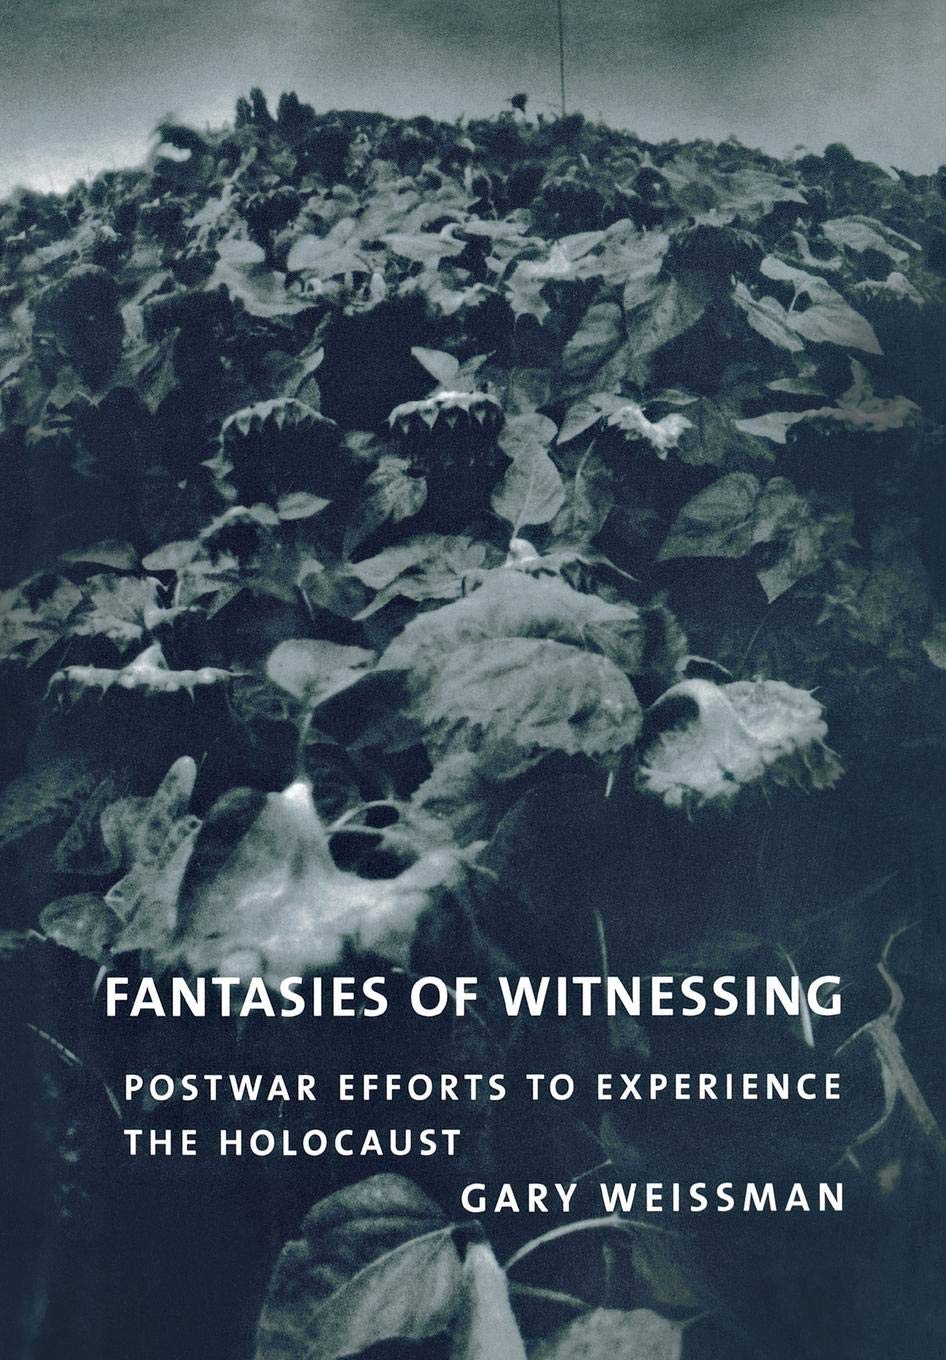 Fantasies of Witnessing: Postwar Efforts to Experience the Holocaust by Brand: Cornell University Press